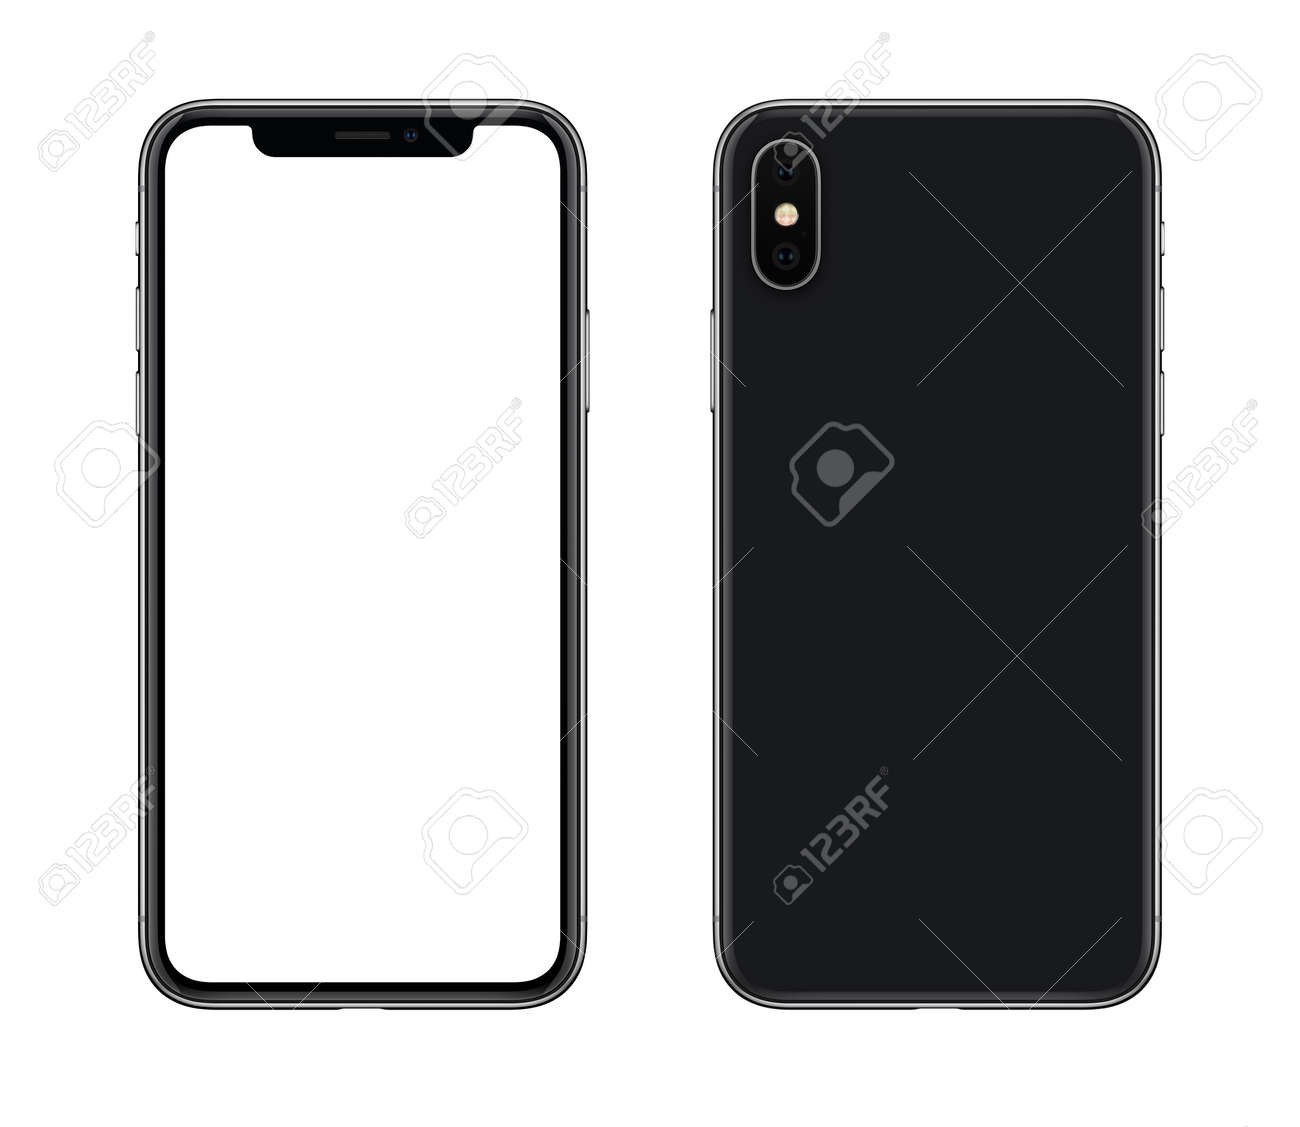 Smartphone mockup front and back side. New modern black frameless smartphone mockup with blank white screen and back side with camera. Isolated on white background. - 87903566